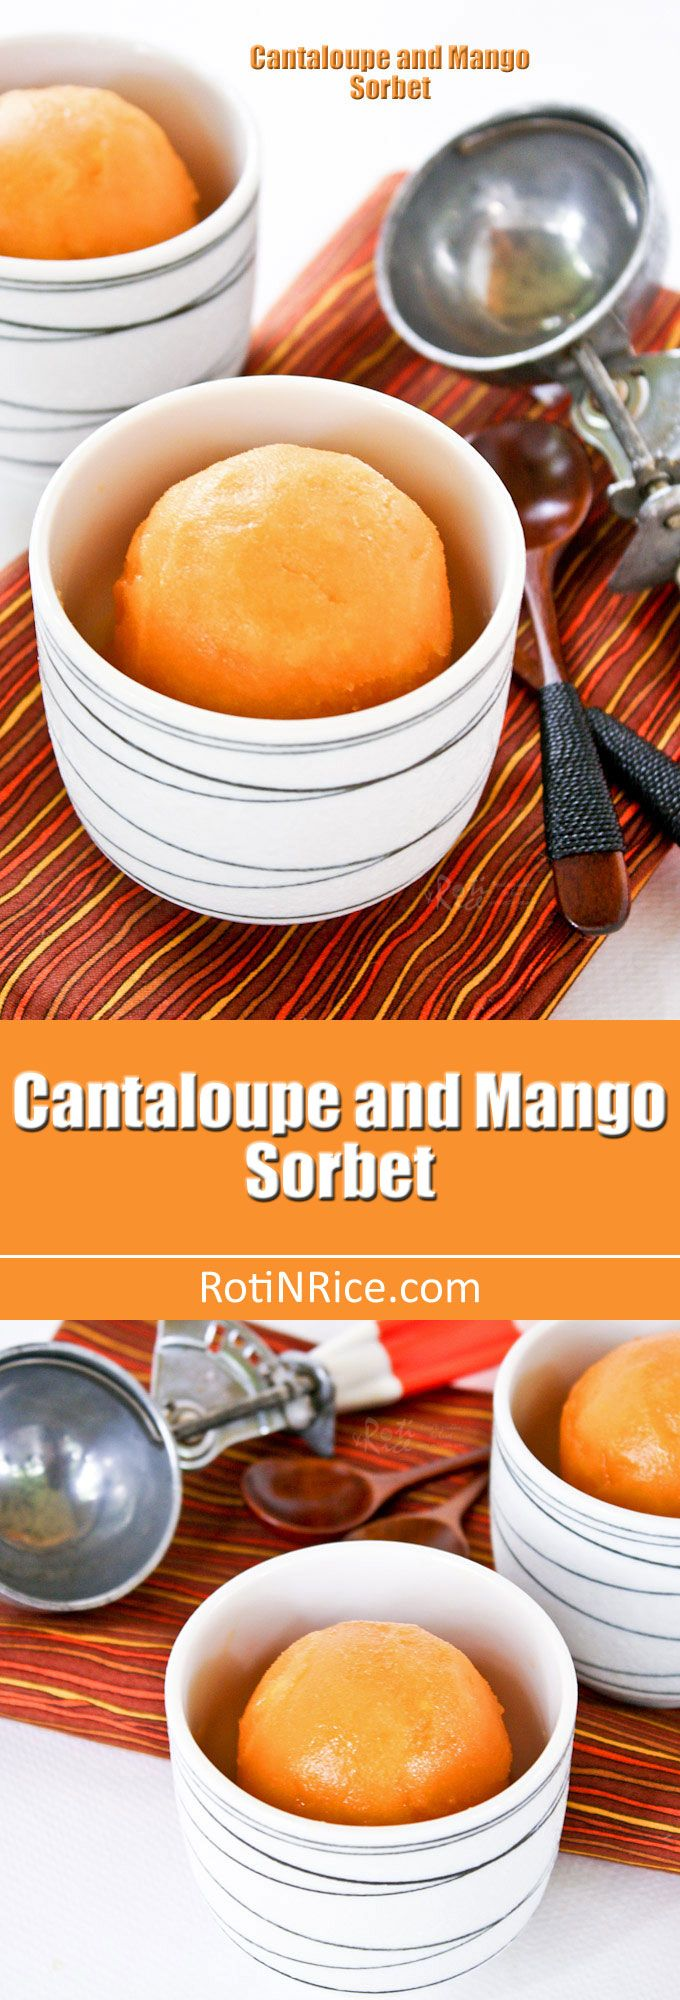 Only four ingredients to make this juicy and refreshing Cantaloupe and Mango Sorbet. A wonderful combination and a must try for the warm summer months.   RotiNRice.com